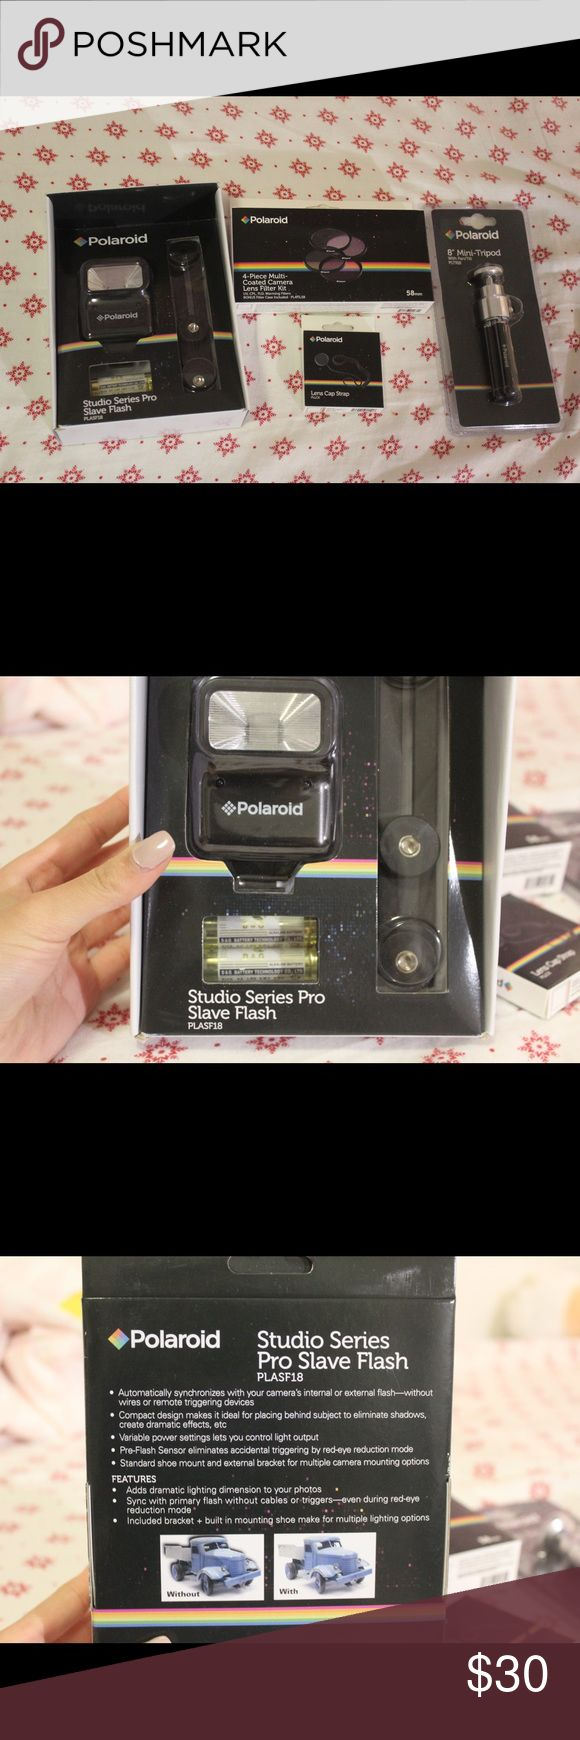 New Polaroid Camera Accessories They're all new from Polaroid! Other #CameraAccessories